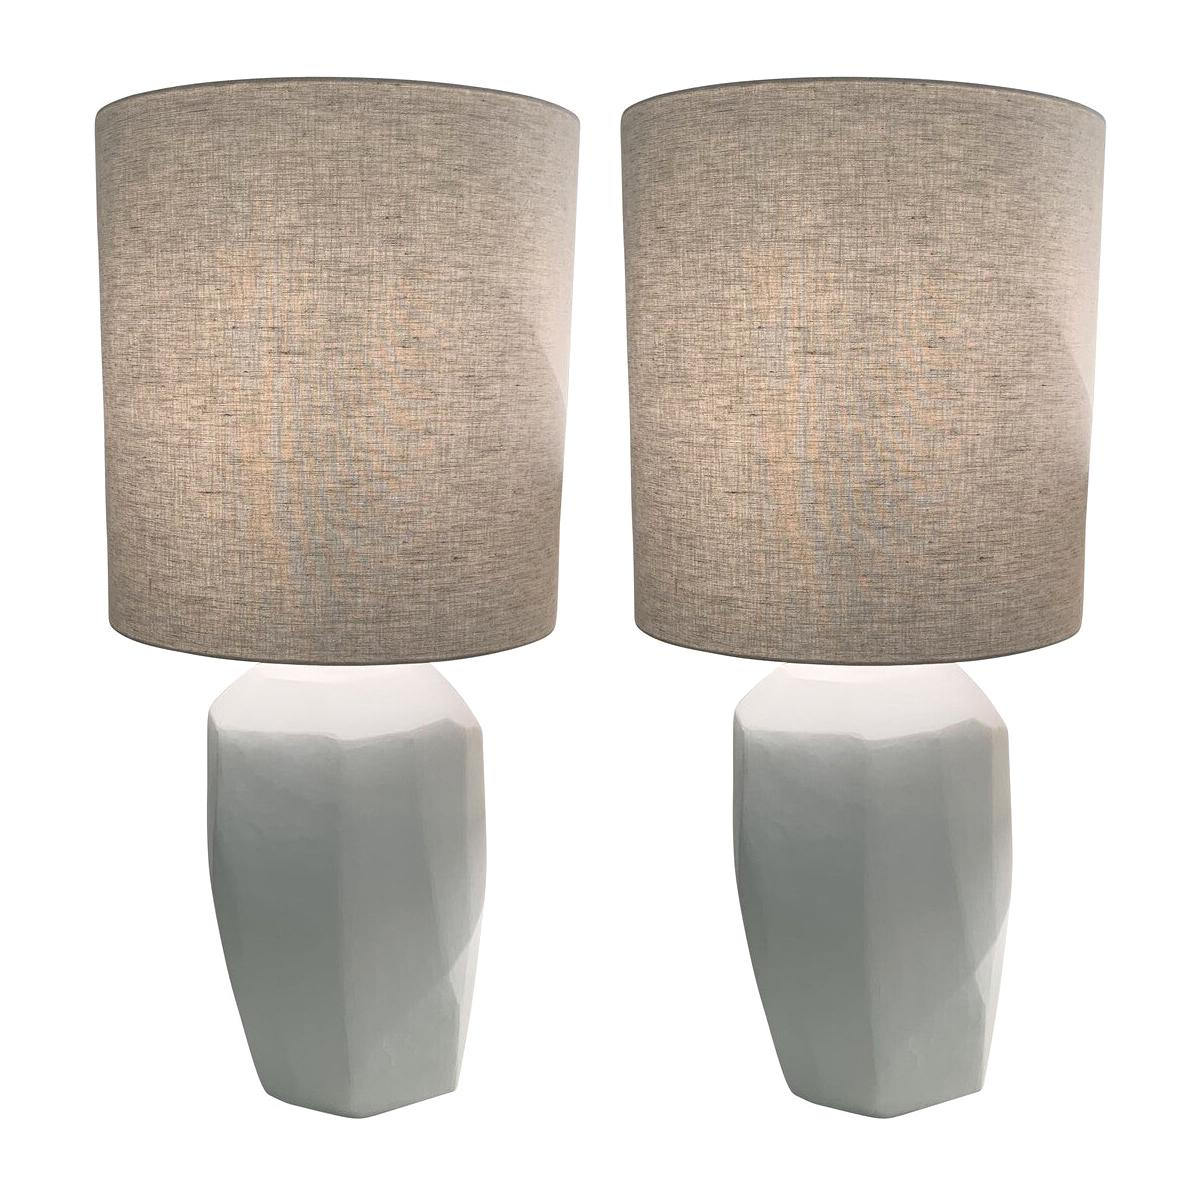 Pair of White Opaque Glass Cubist Design Lamps, Romania, Contemporary